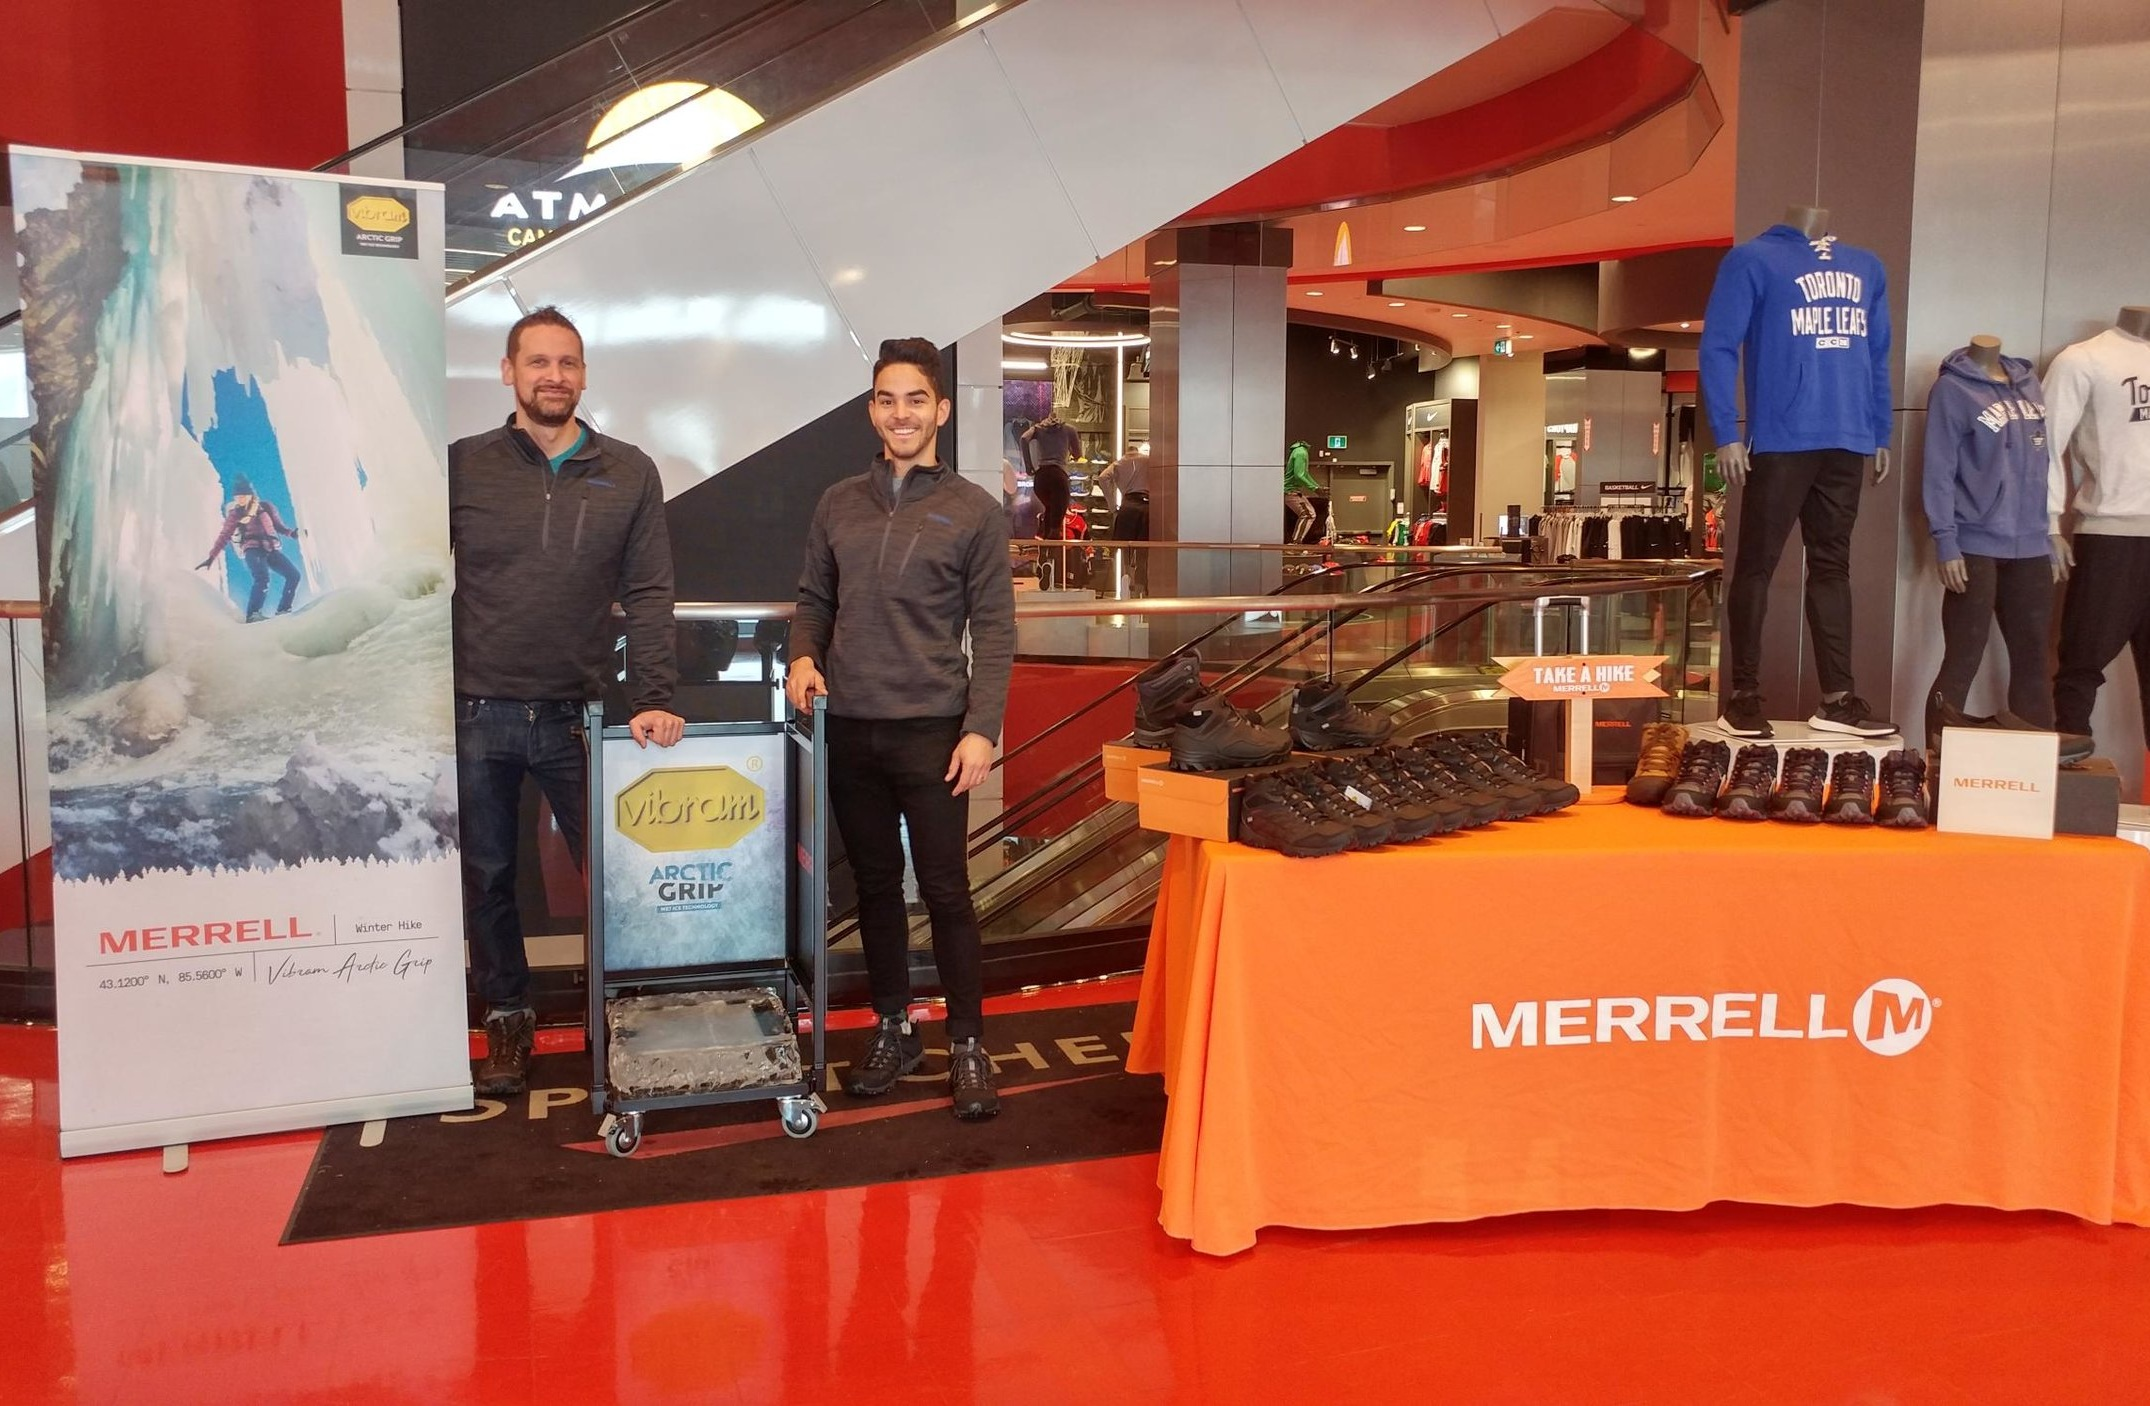 Merrell - Product demo and in-store activationsLearn more